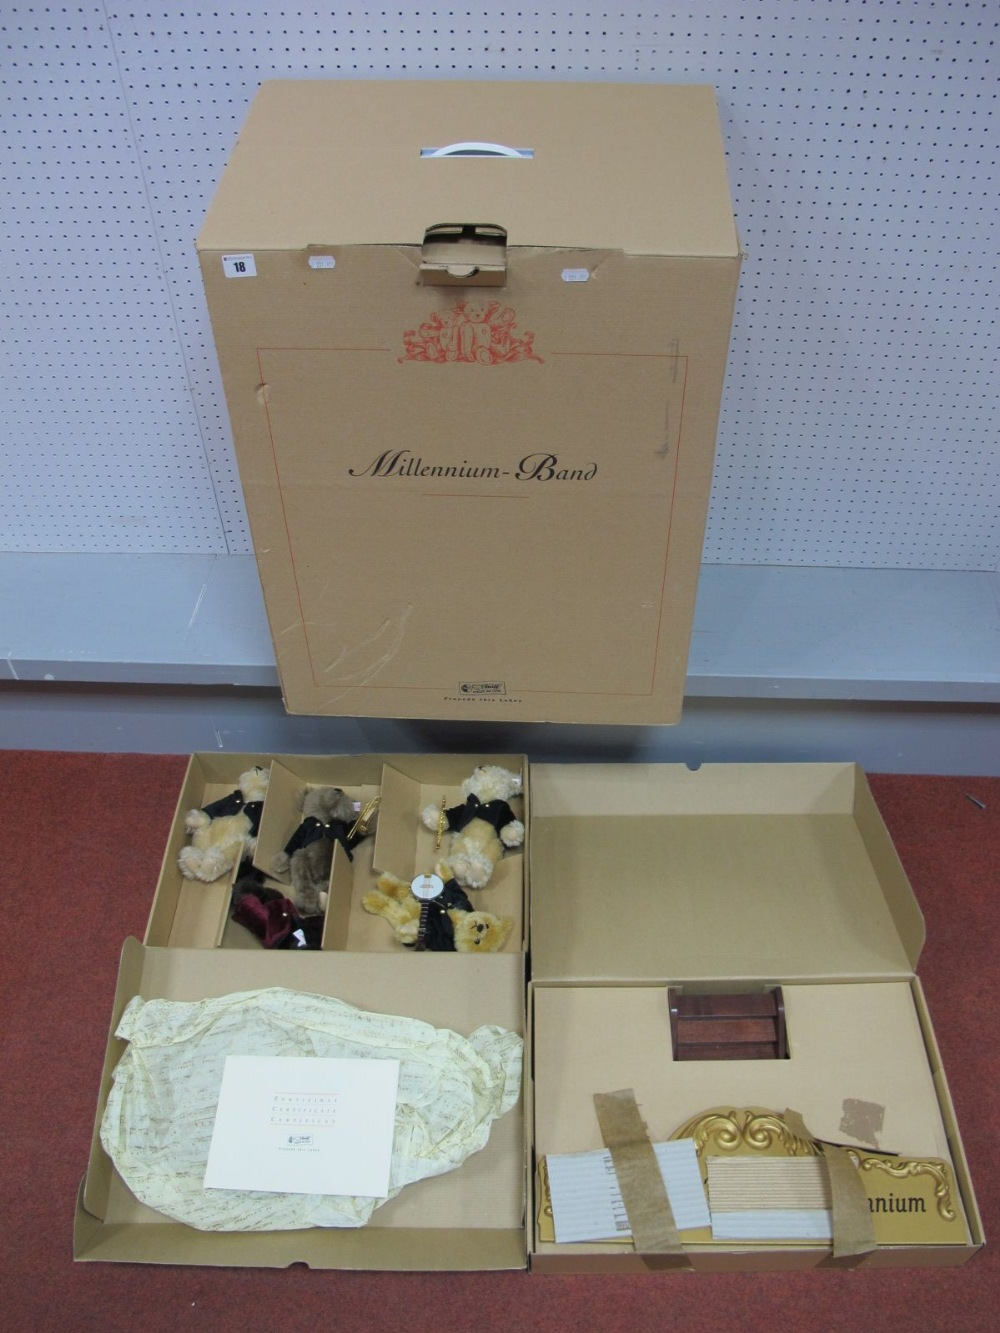 Lot 18 - A Boxed Steiff Teddy Bear Millennium Band Set, consisting of five Teddy Bears and a wooden stage